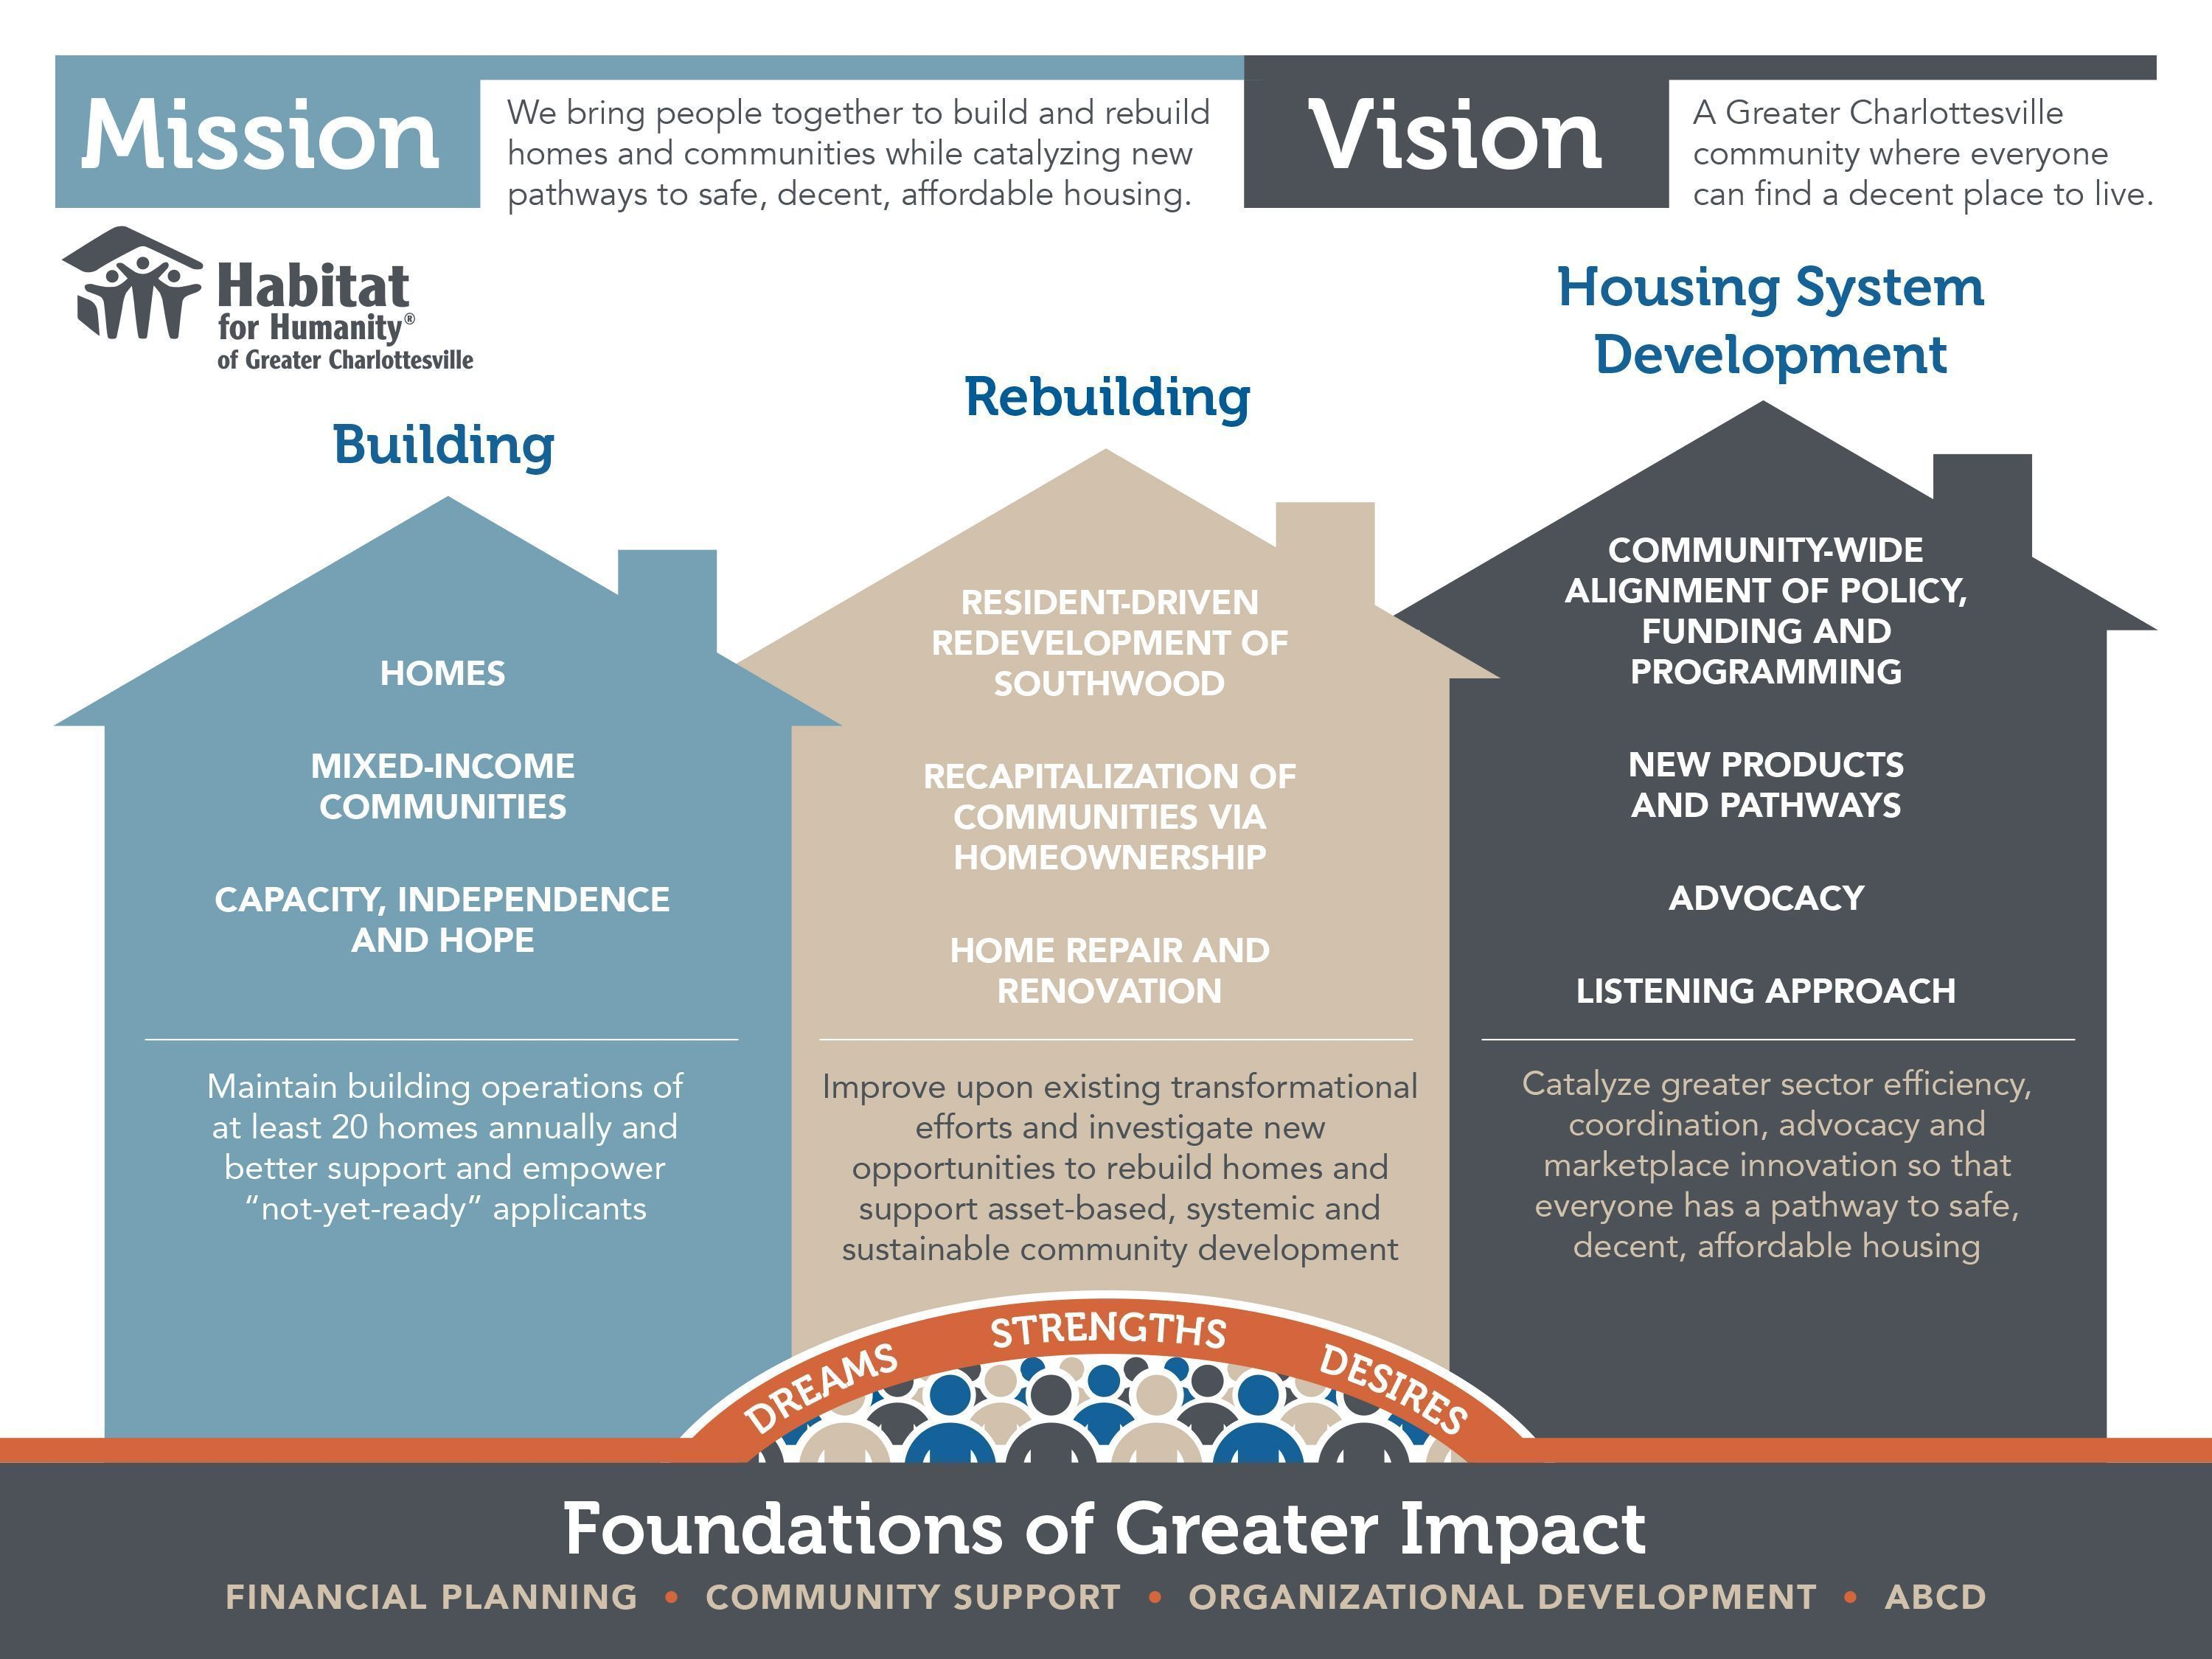 Infographic of Habitat for Humanity missions, vision, and goals.